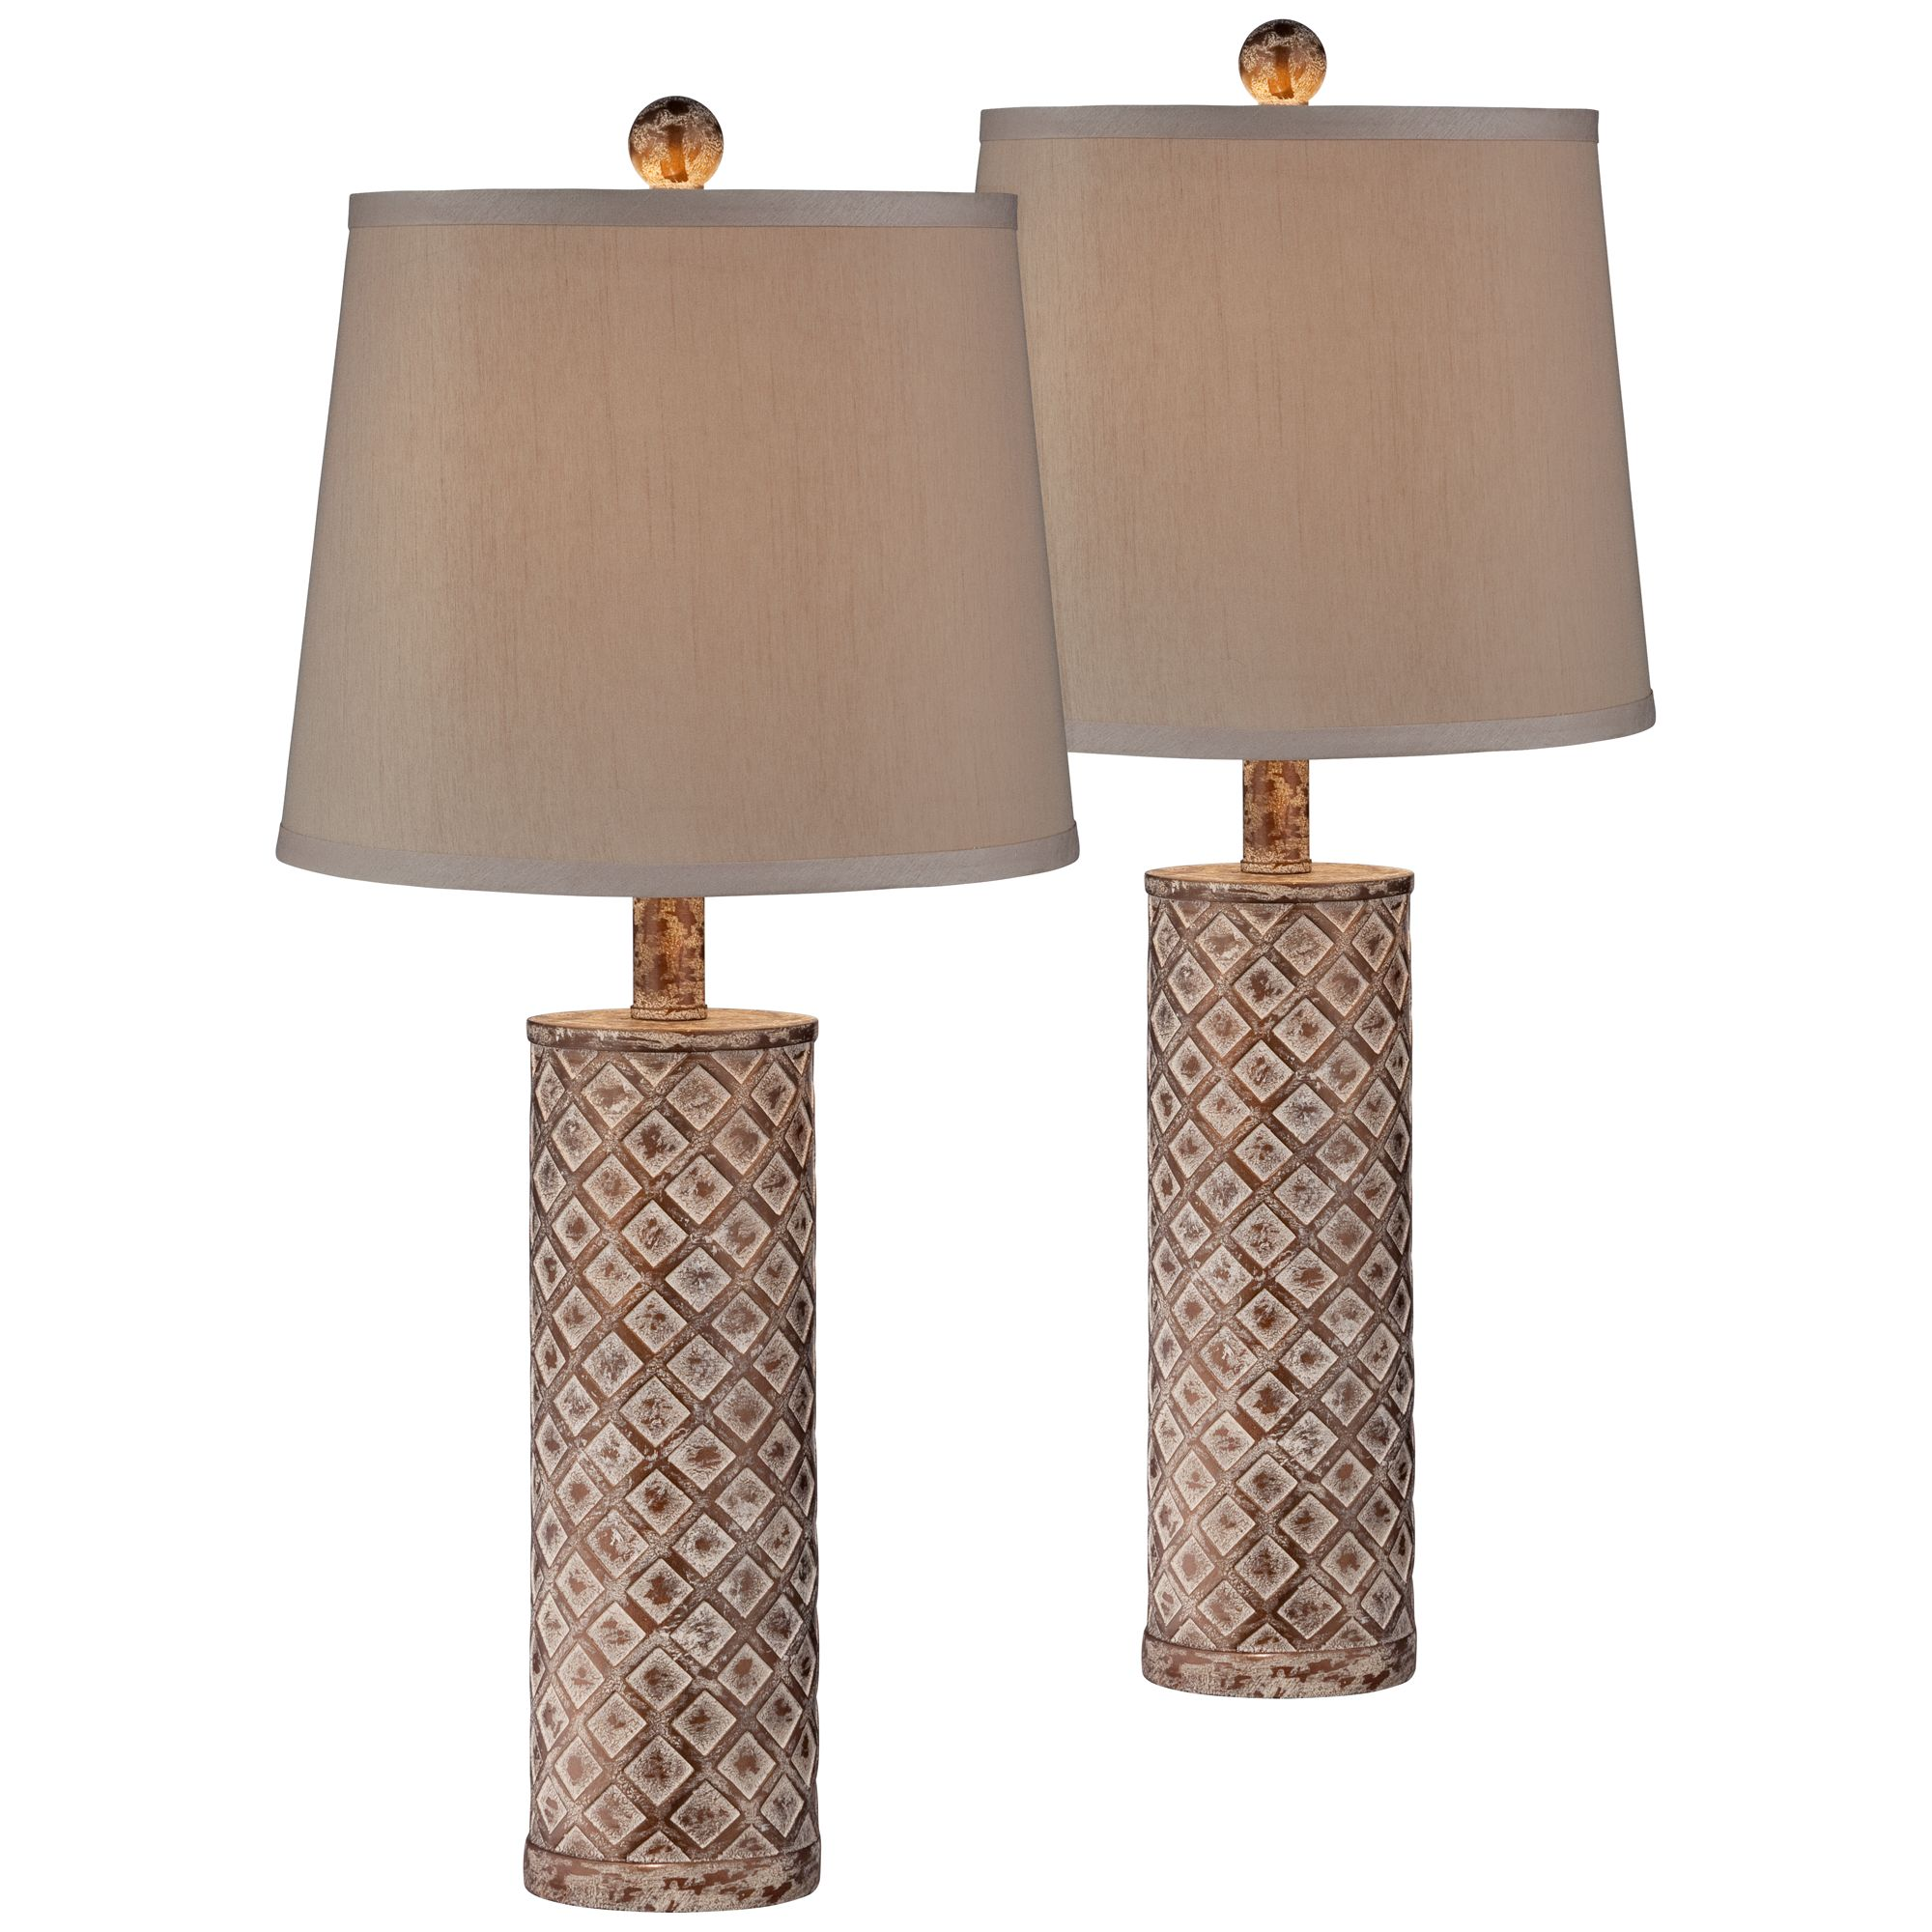 360 Lighting Cottage Table Lamps Set of 2 Gold Wash Lattice Column Tapered Drum Shade for Living Room Family Bedroom Nightstand